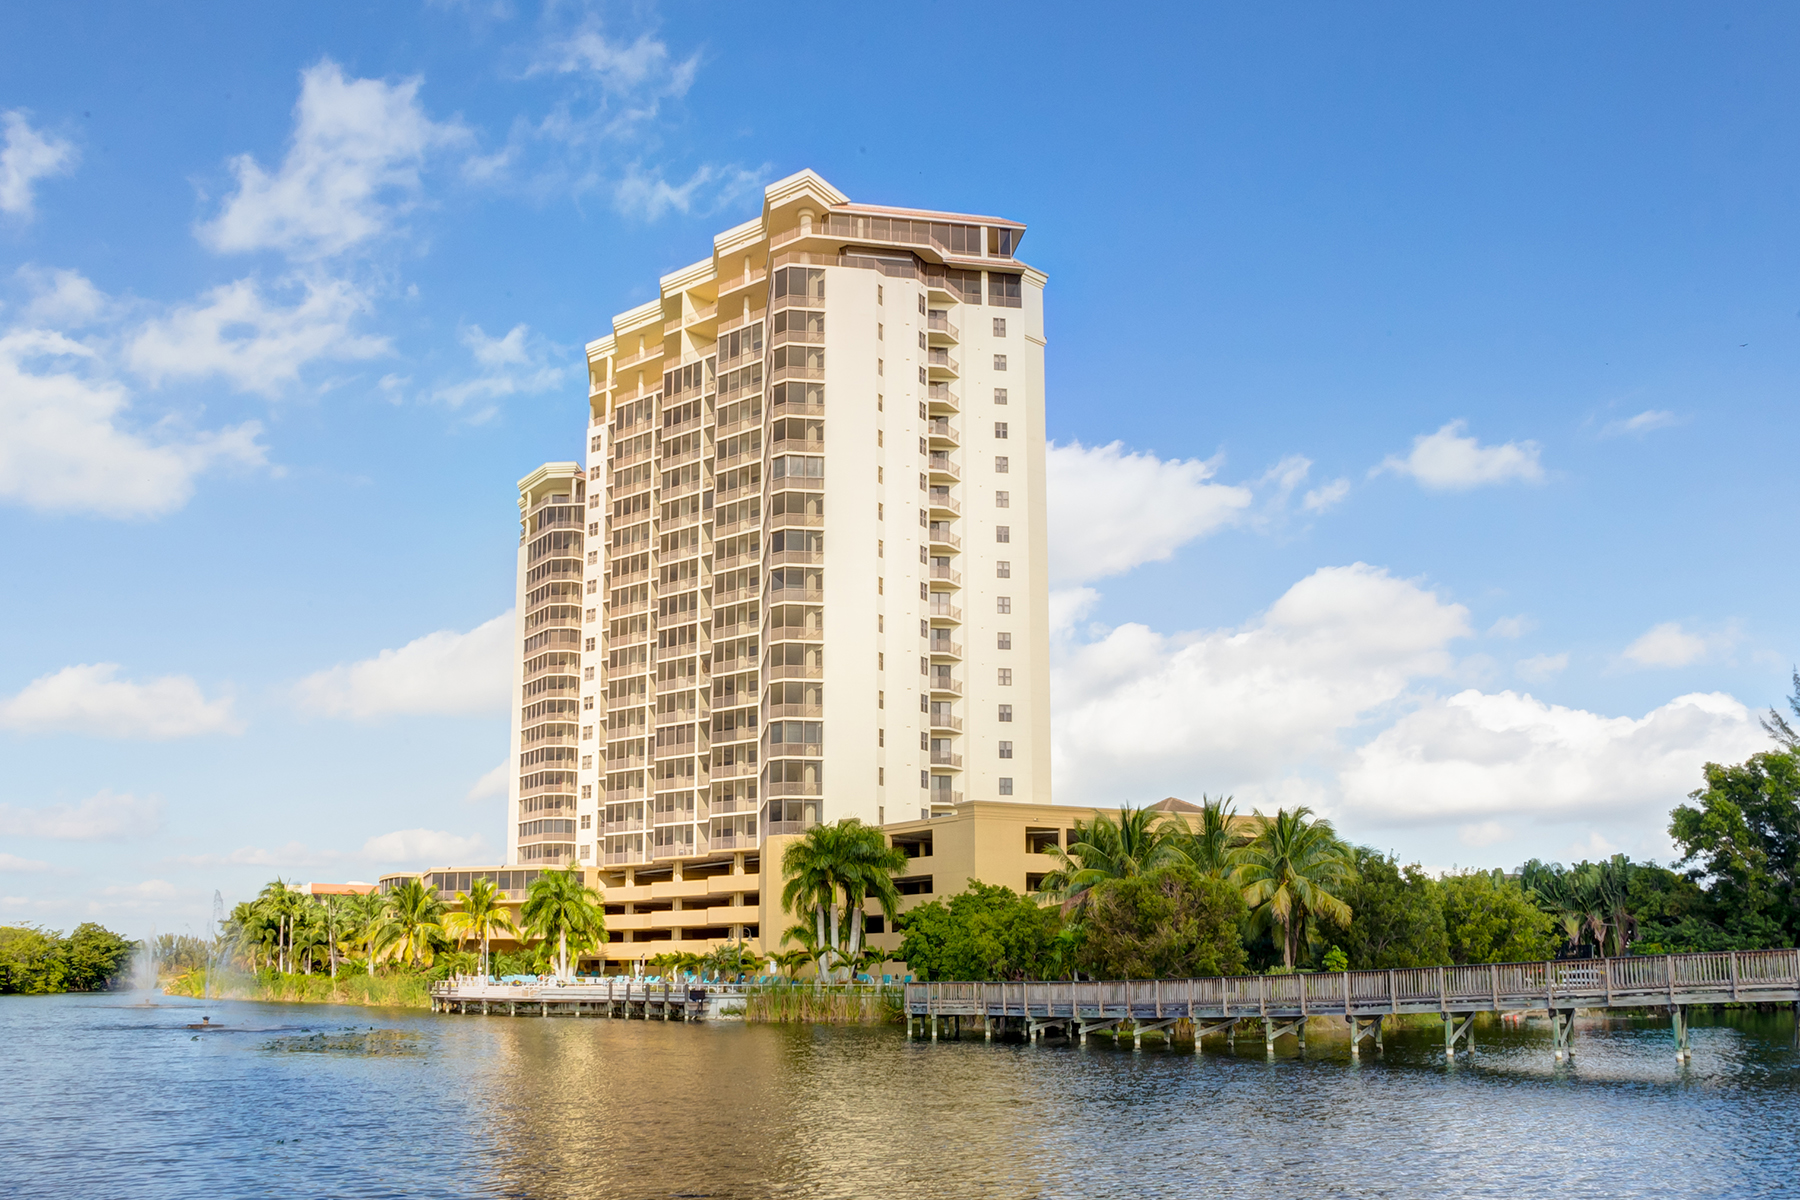 Condominium for Sale at FORT MYERS 14300 Riva Del Lago Dr PH32 Fort Myers, Florida, 33907 United States